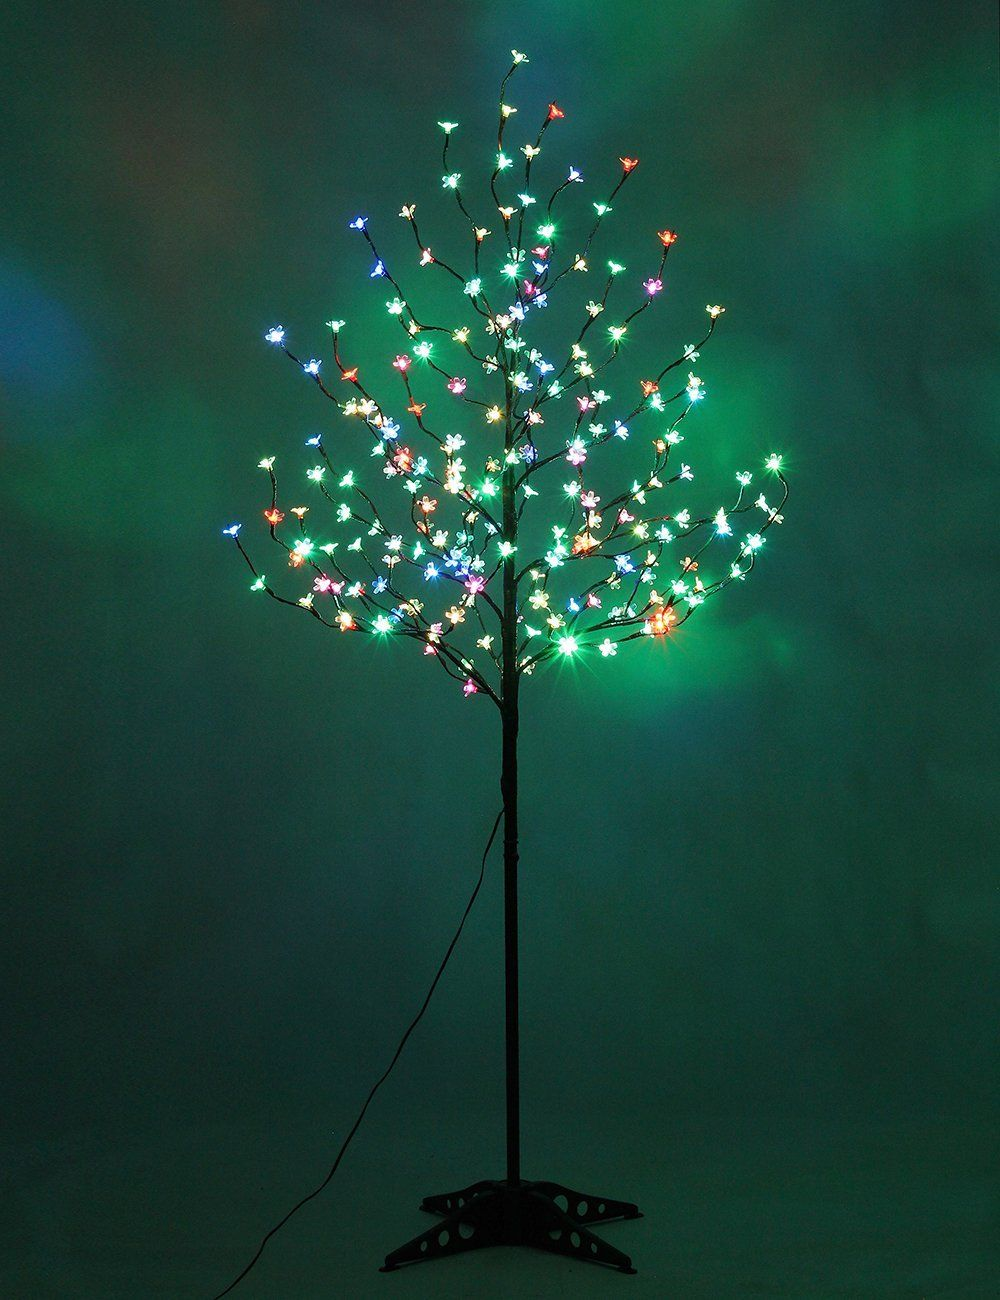 Lightshare New 6ft 208 Led Cherry Blossom Tree Light Slow Color Changing Light Or Home Garden Decoratio Blossom Trees Color Changing Lights Cherry Blossom Tree